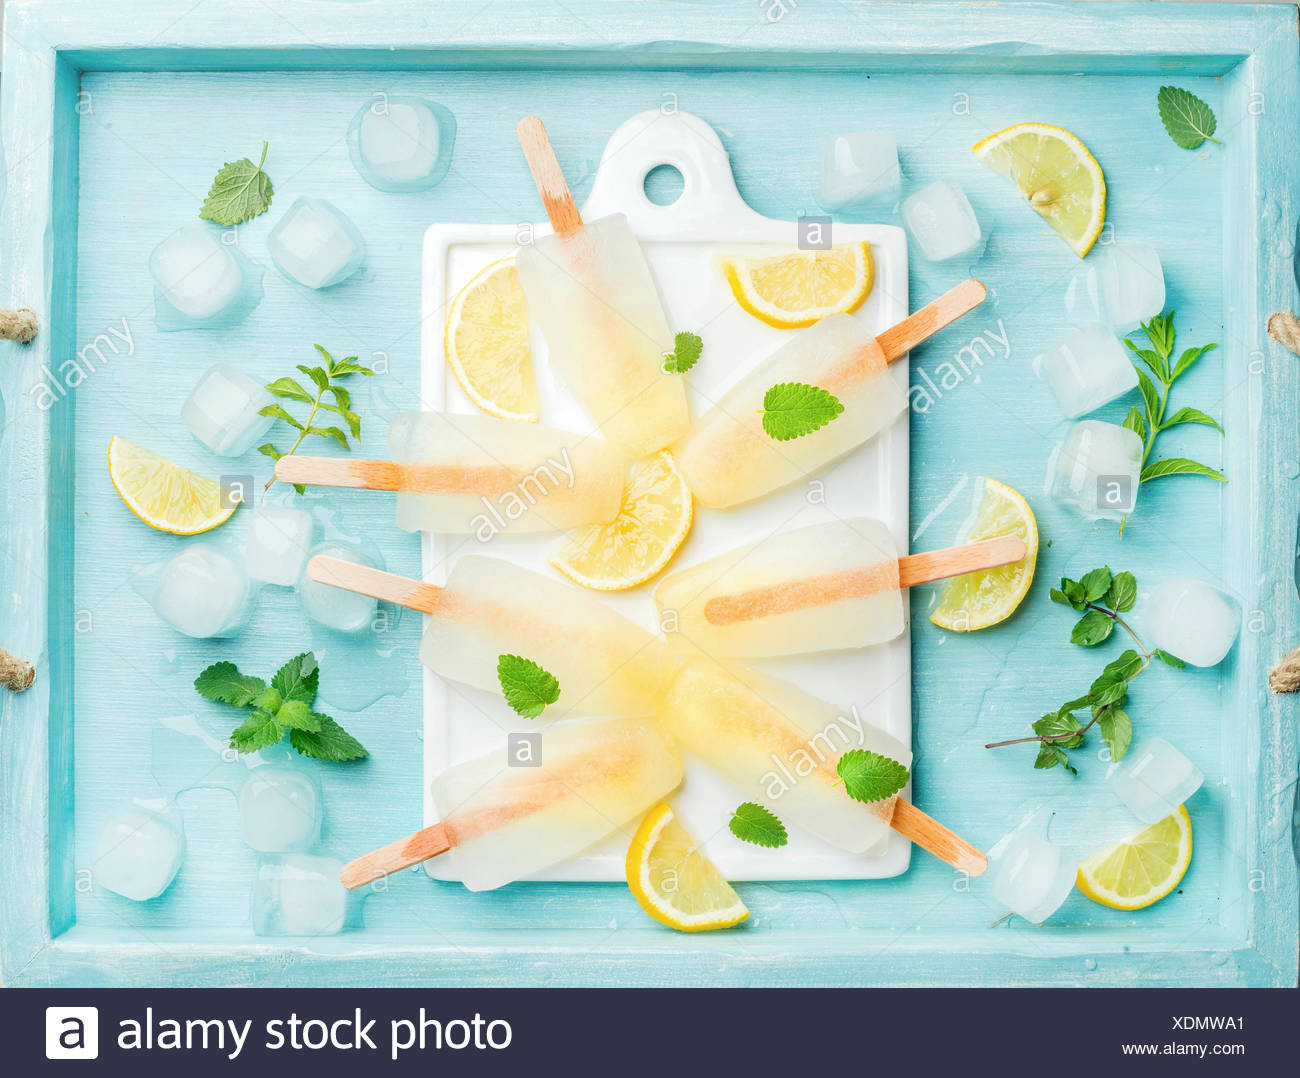 Lemon ice lollies on white ceramic board served with lemon slices, ice cubes and mint leaves over blue Turquoise backdrop, top v - Stock Image